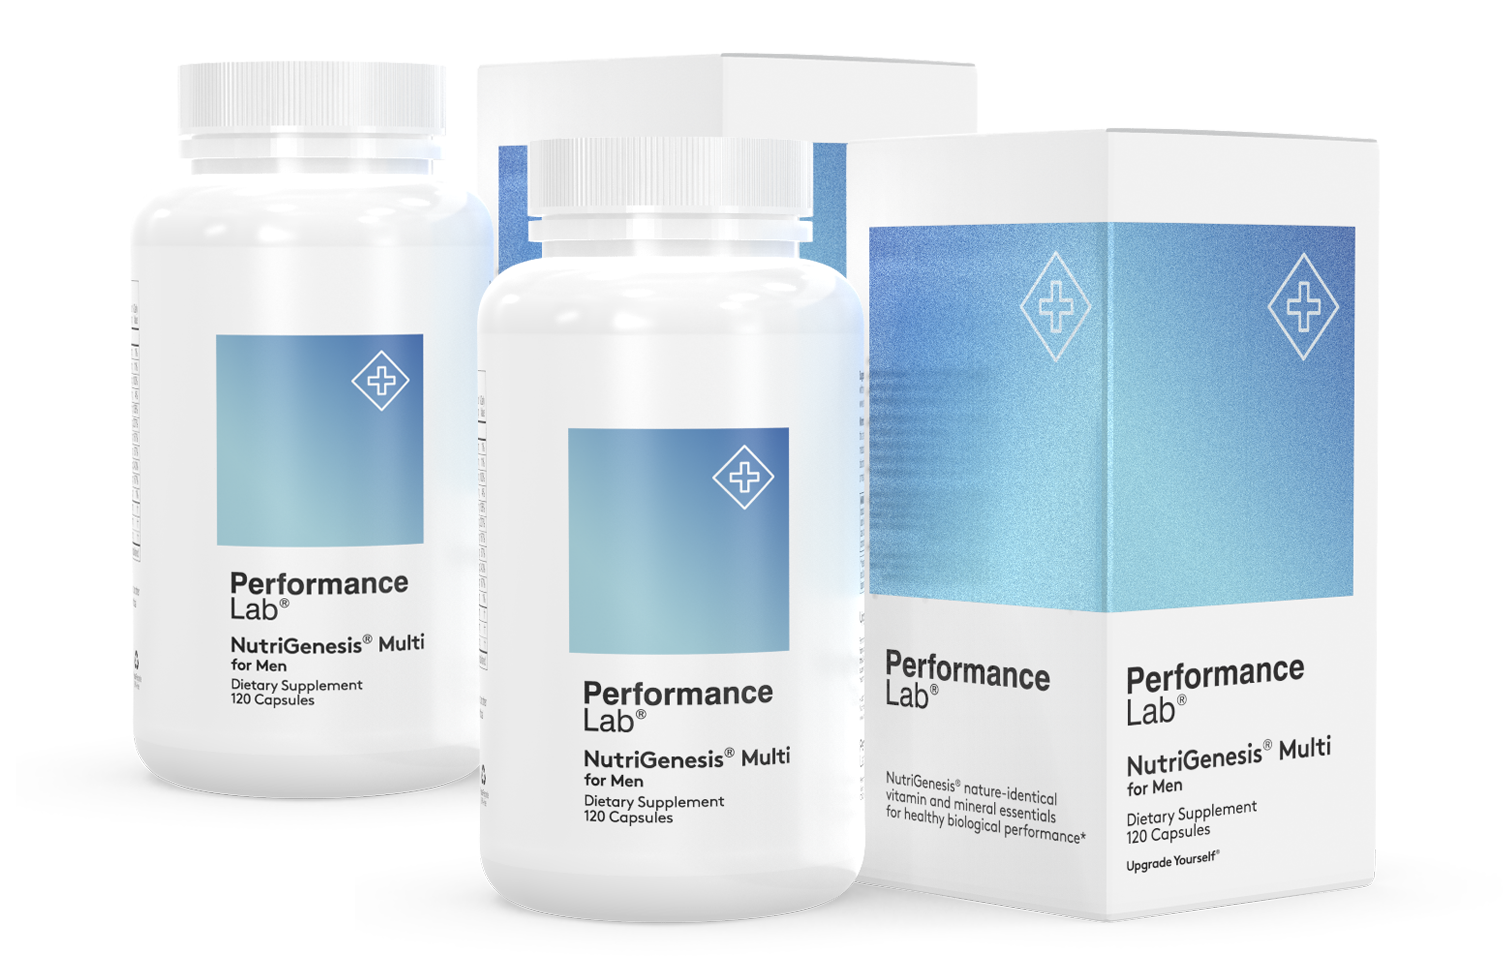 NutriGenesis® Multi for Men